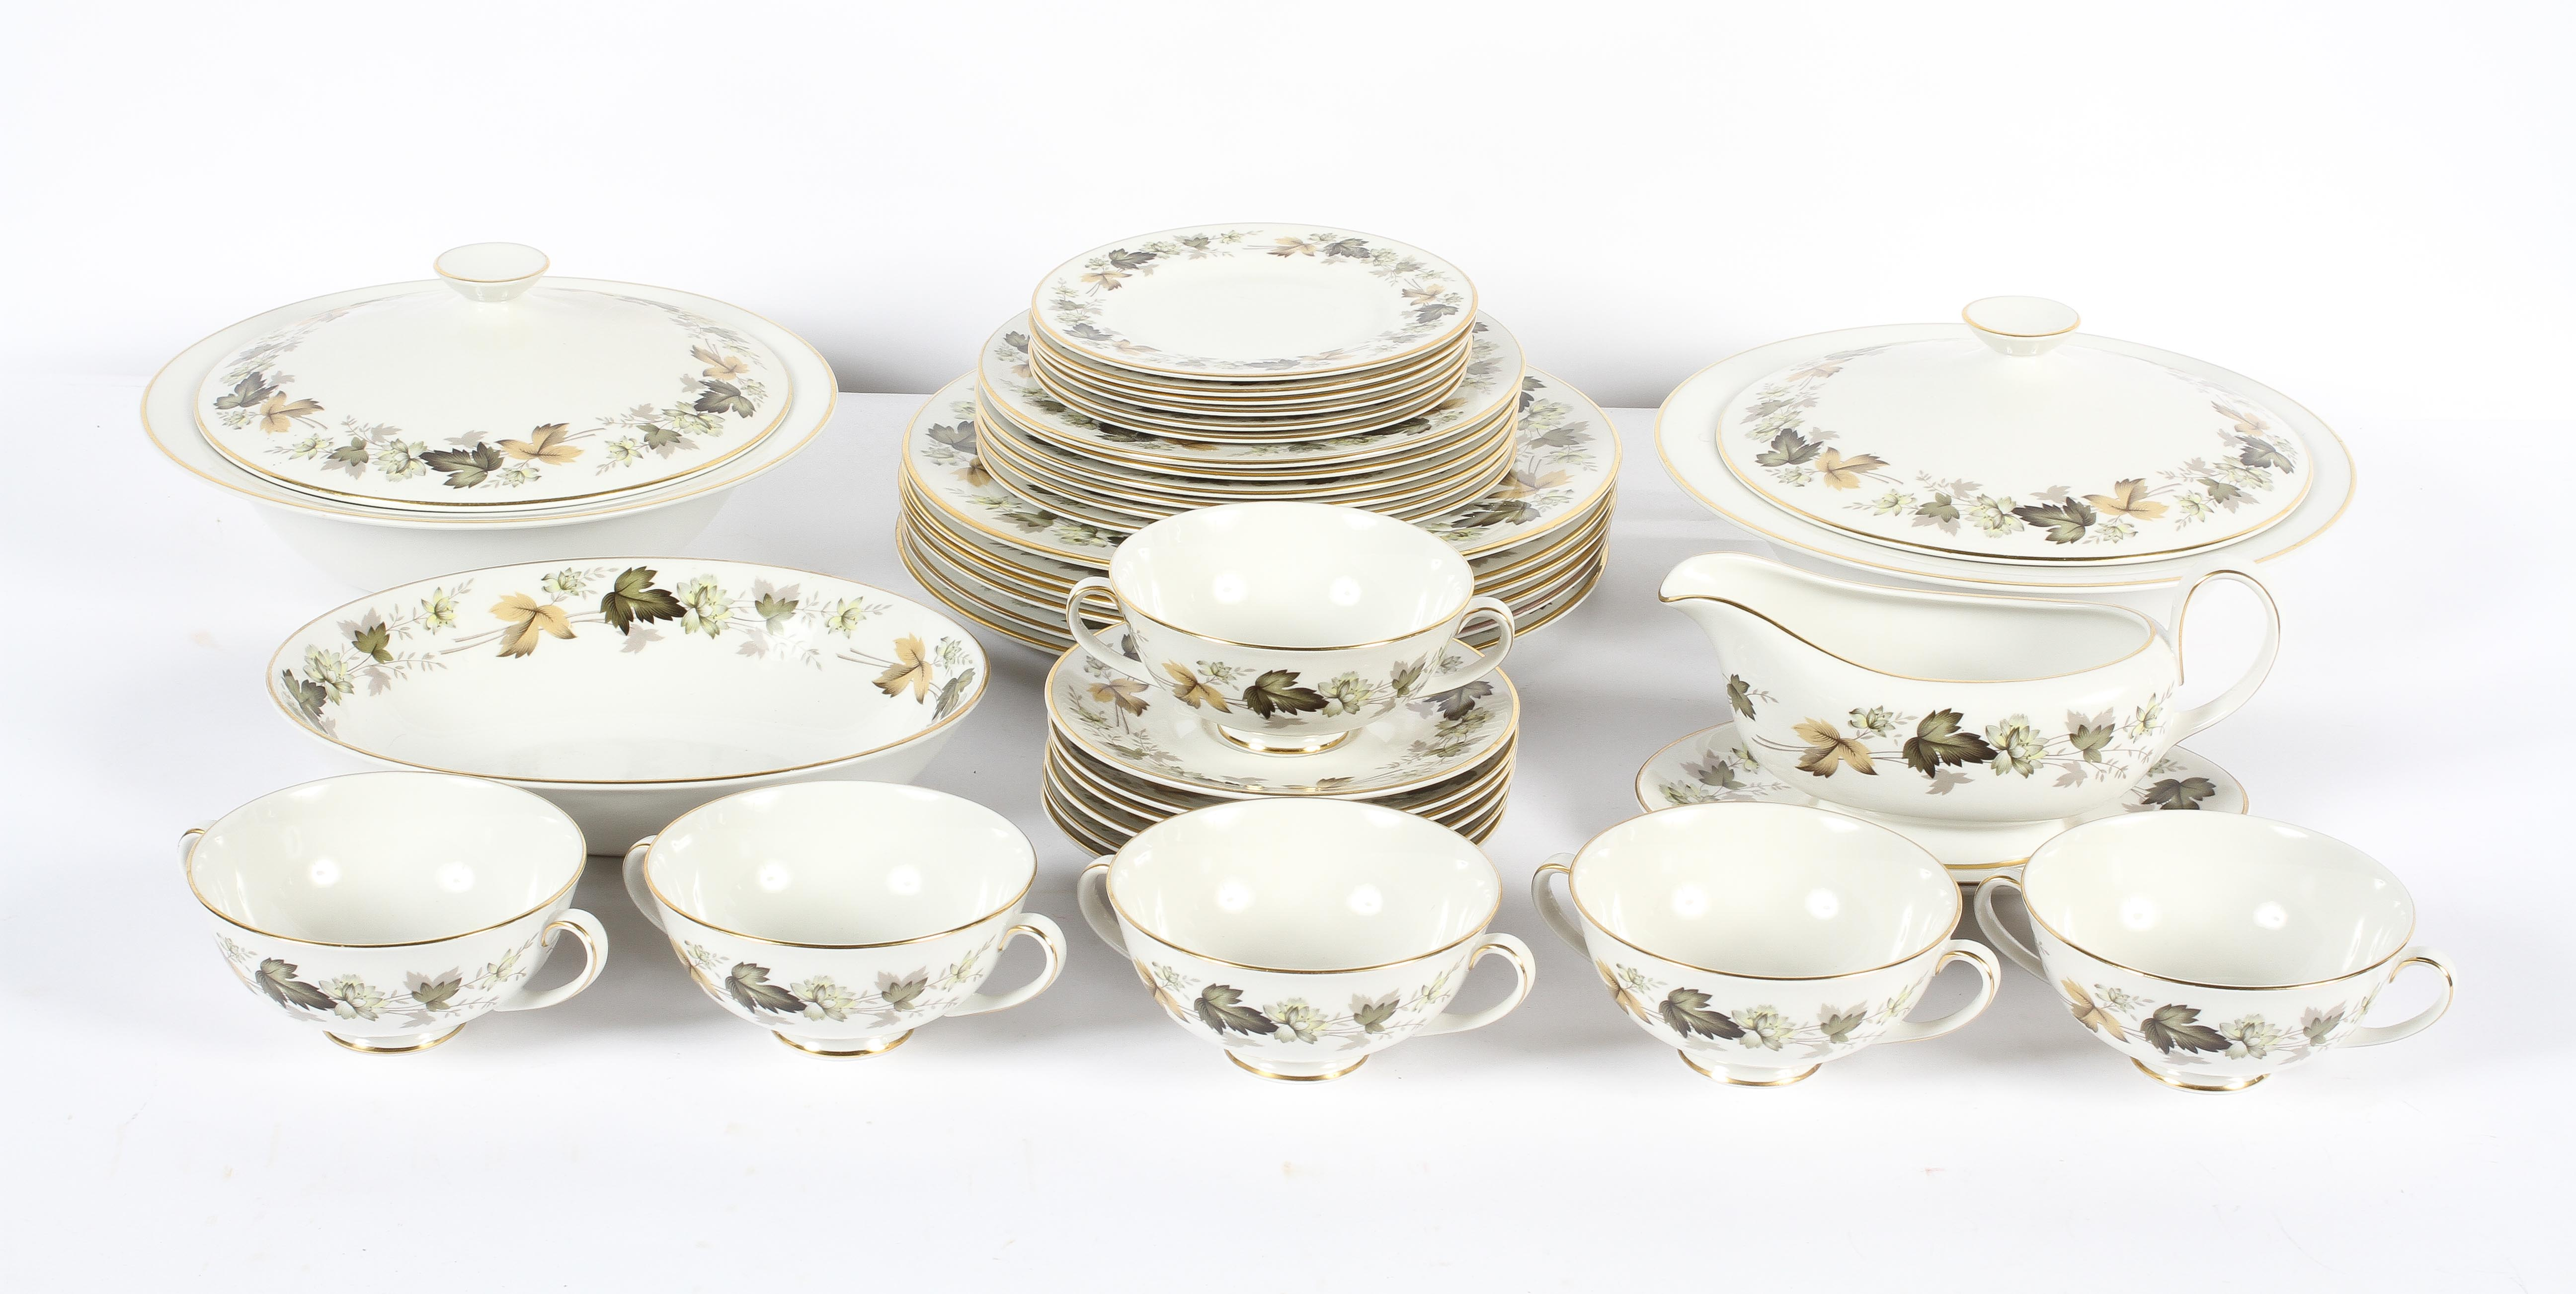 A Royal Doulton 'Larchmont' pattern part dinner service, 20th century, printed grey marks, - Image 2 of 3